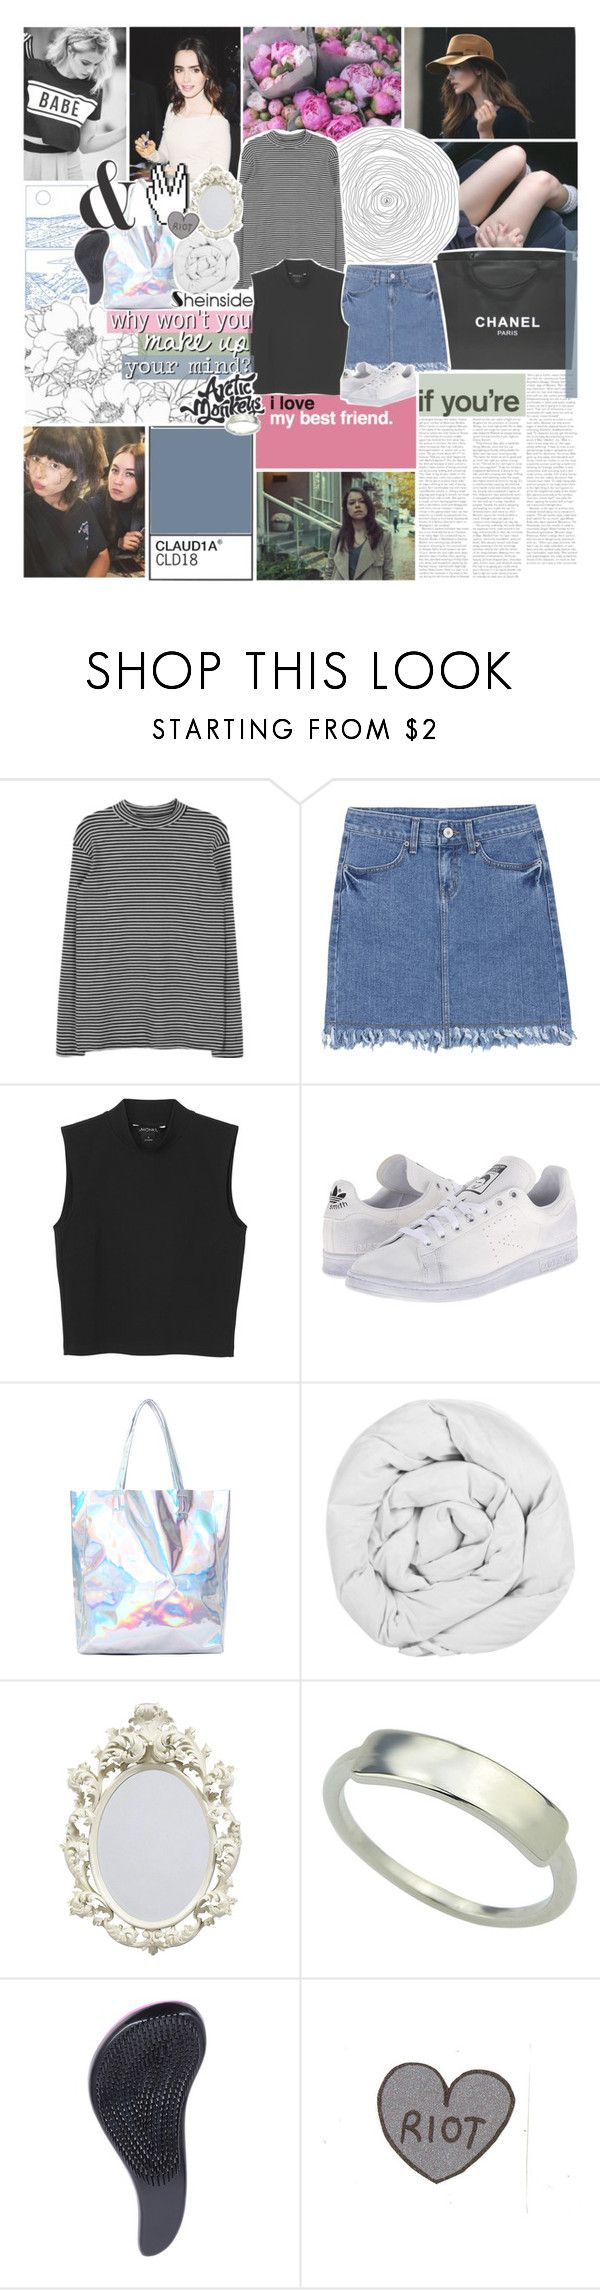 """""""hearing music from another time"""" by kristen-gregory-sexy-sports-babe ❤ liked on Polyvore featuring Chanel, Monki, adidas and The Fine Bedding Company"""